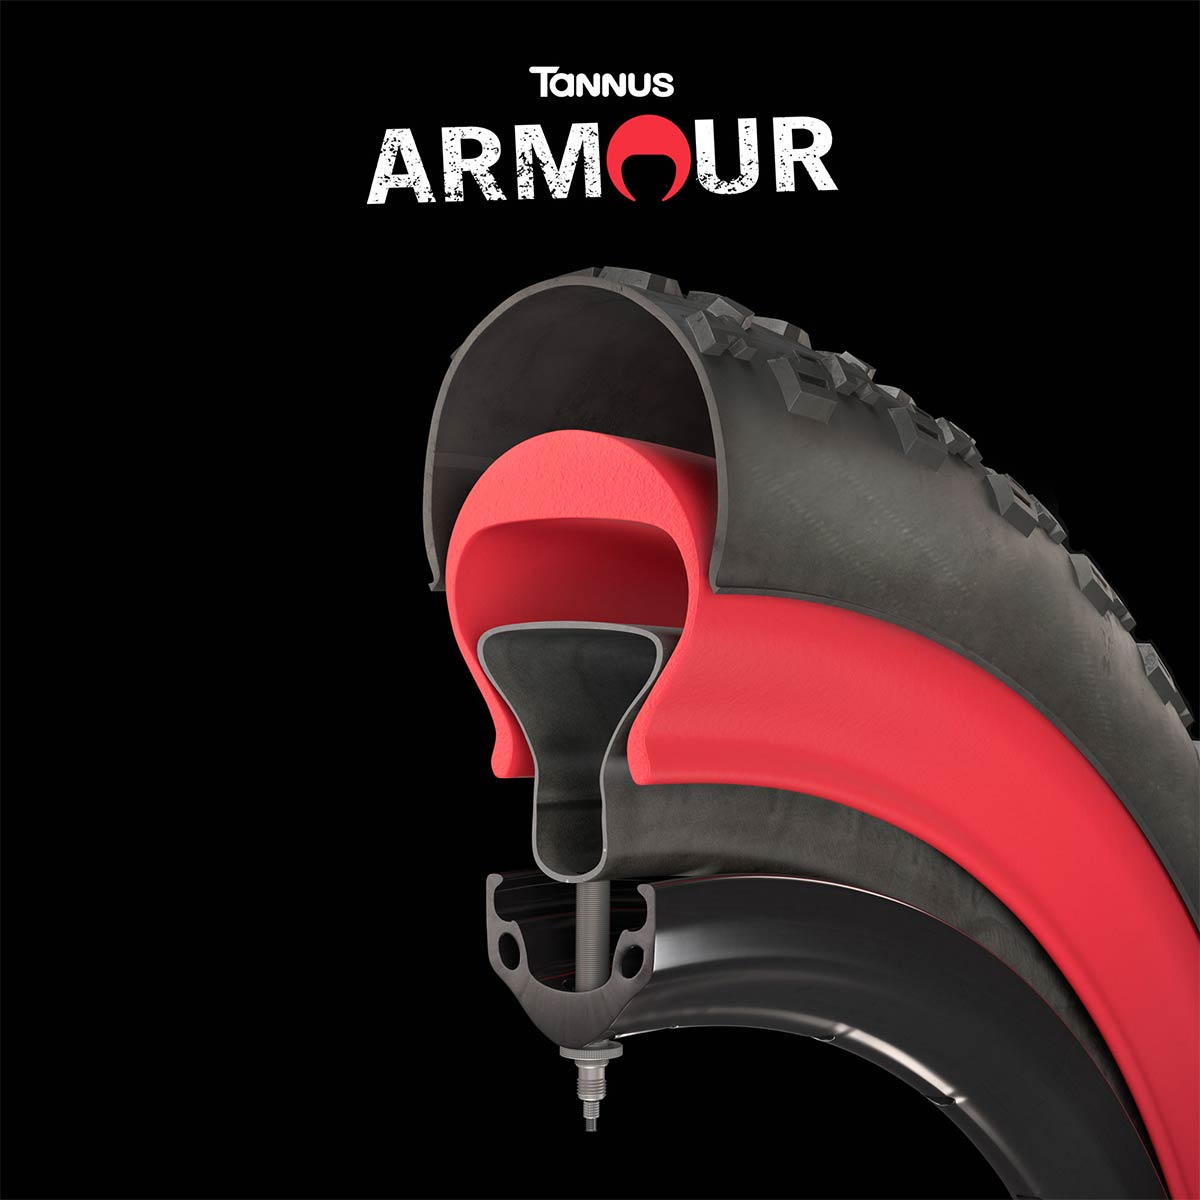 Tannus-Armour-Mountain-Bike-Tyre-Insert-Puncture-Protection